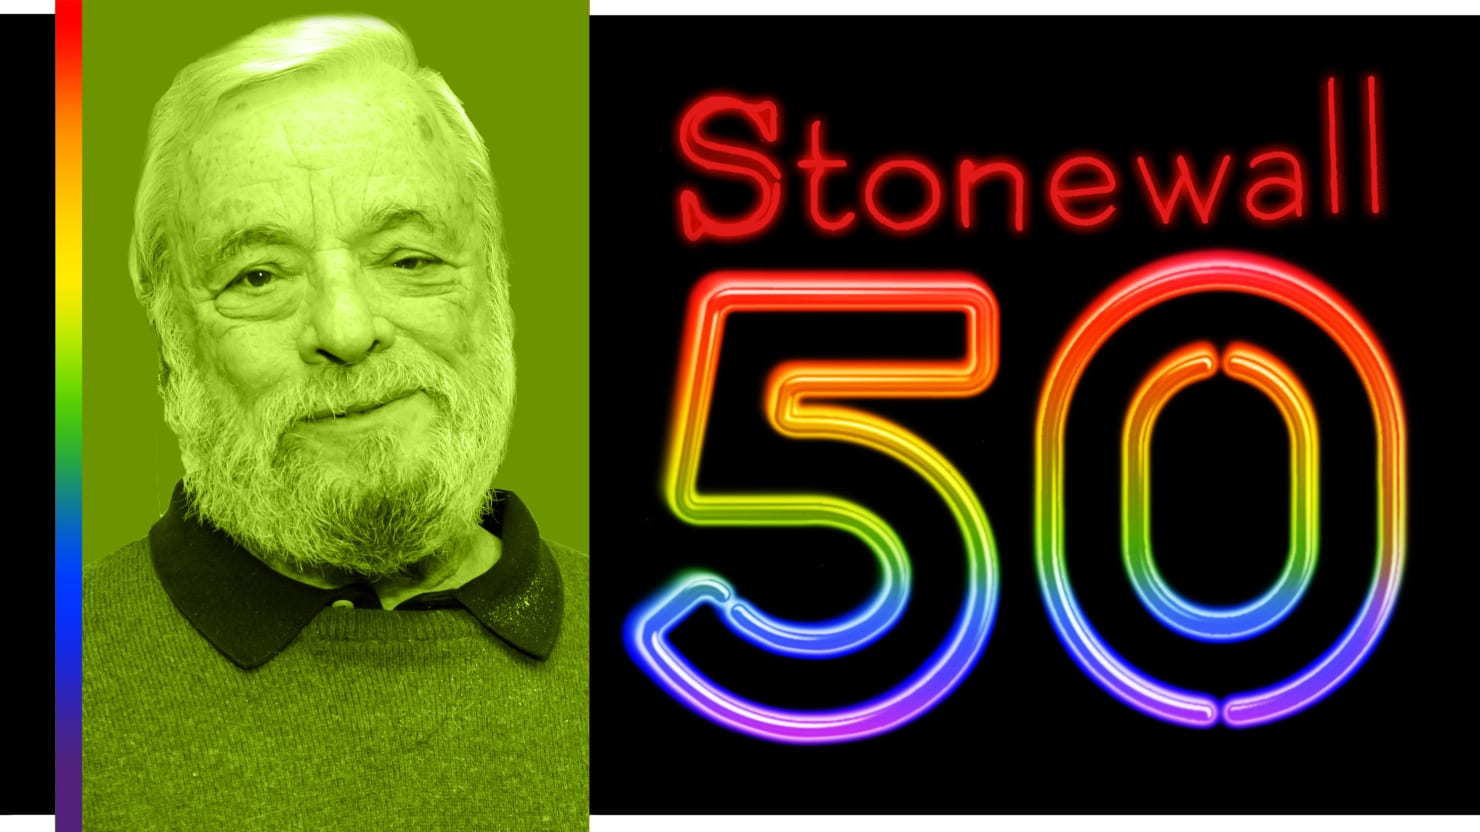 Stephen Sondheim: I'd Like To See the Term LGBT Disappear From the English Language